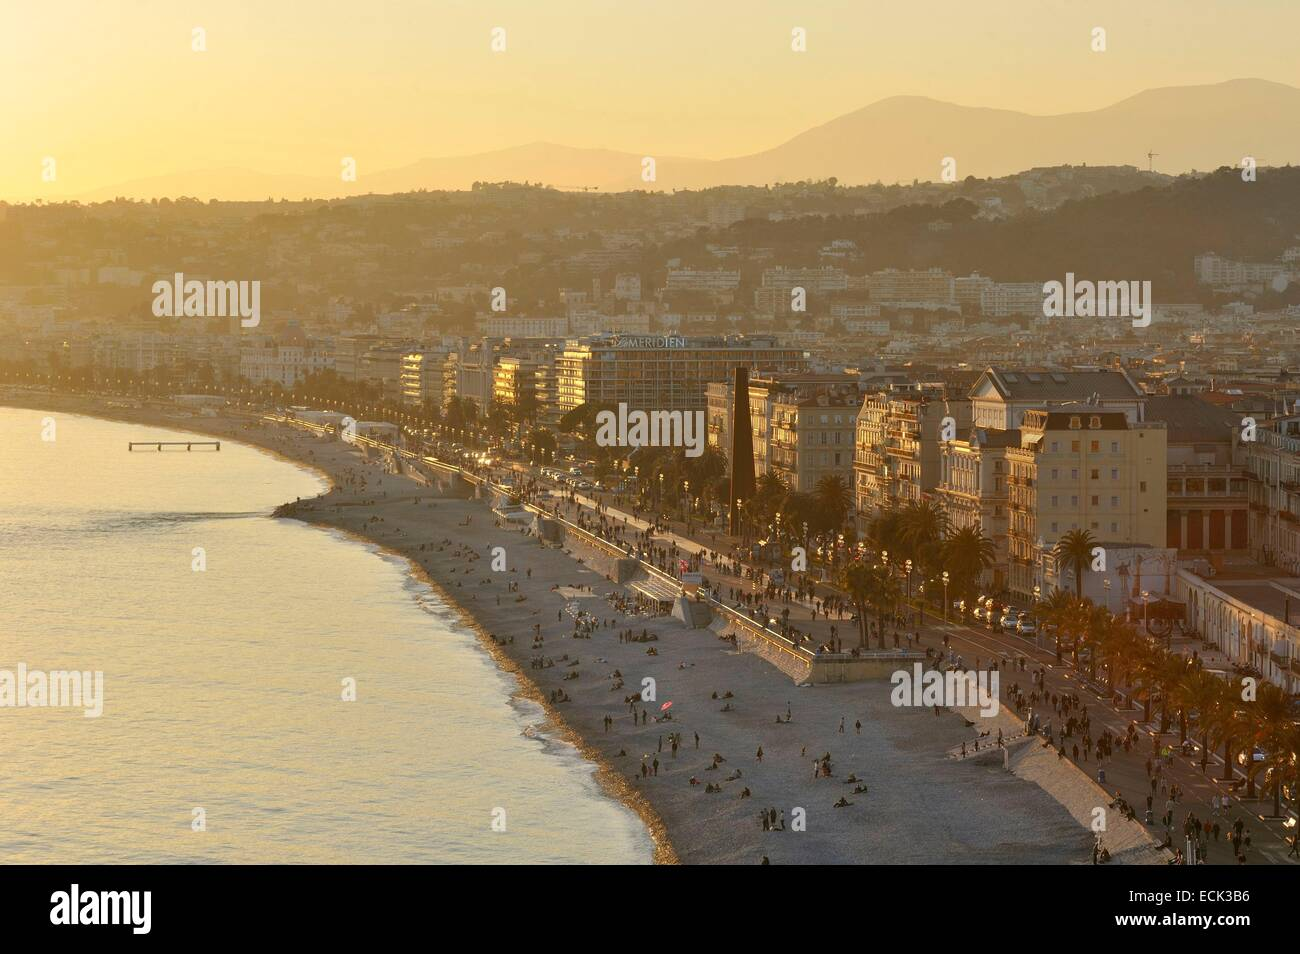 France, Alpes-Maritimes, Nice, the Promenade des Anglais from the castle hill Stock Photo